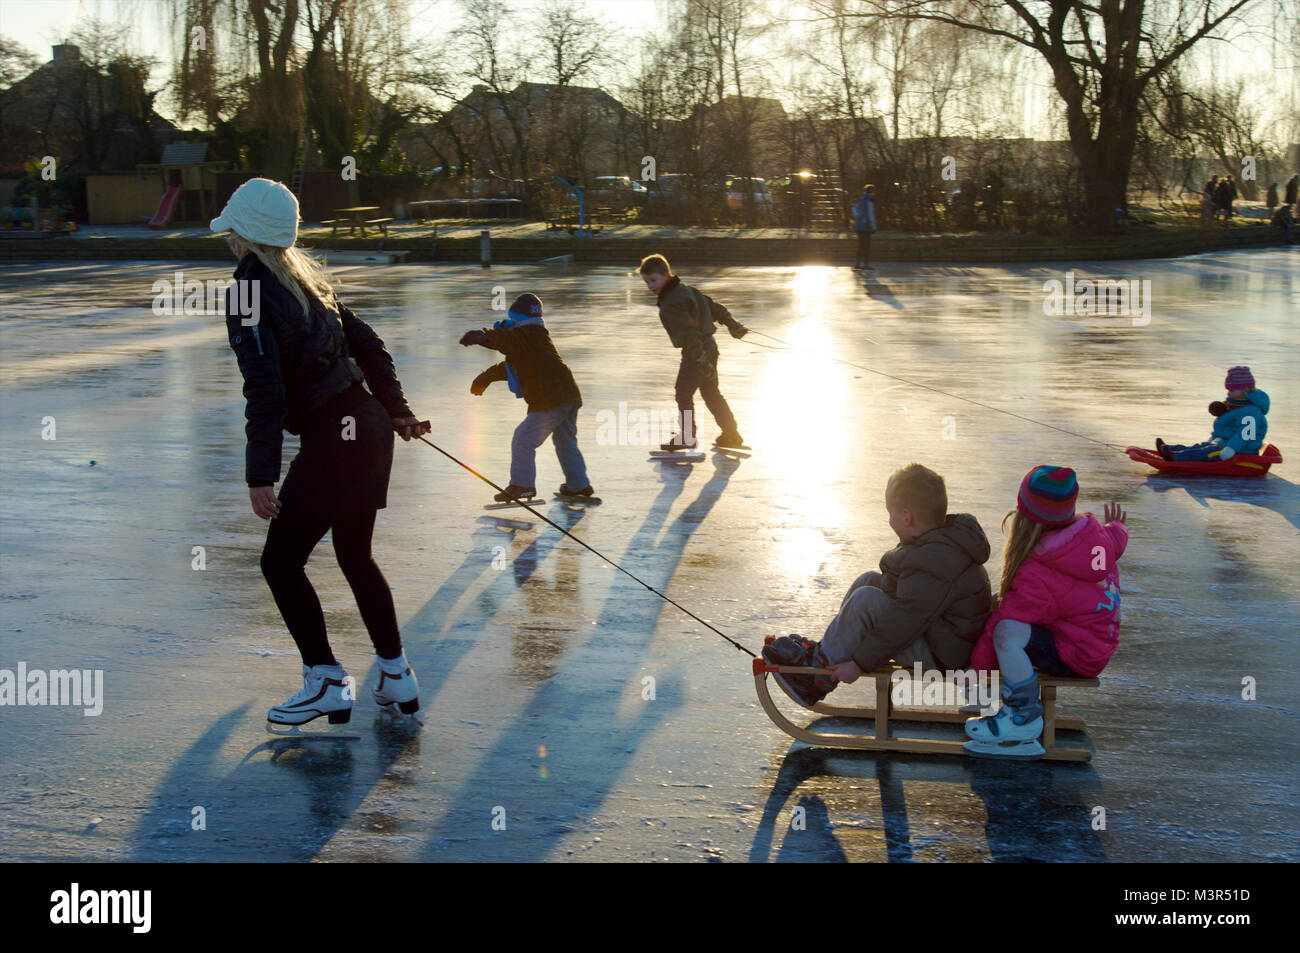 Young mother with children pulling a sled and skating on ice together in the Netherlands - Stock Image